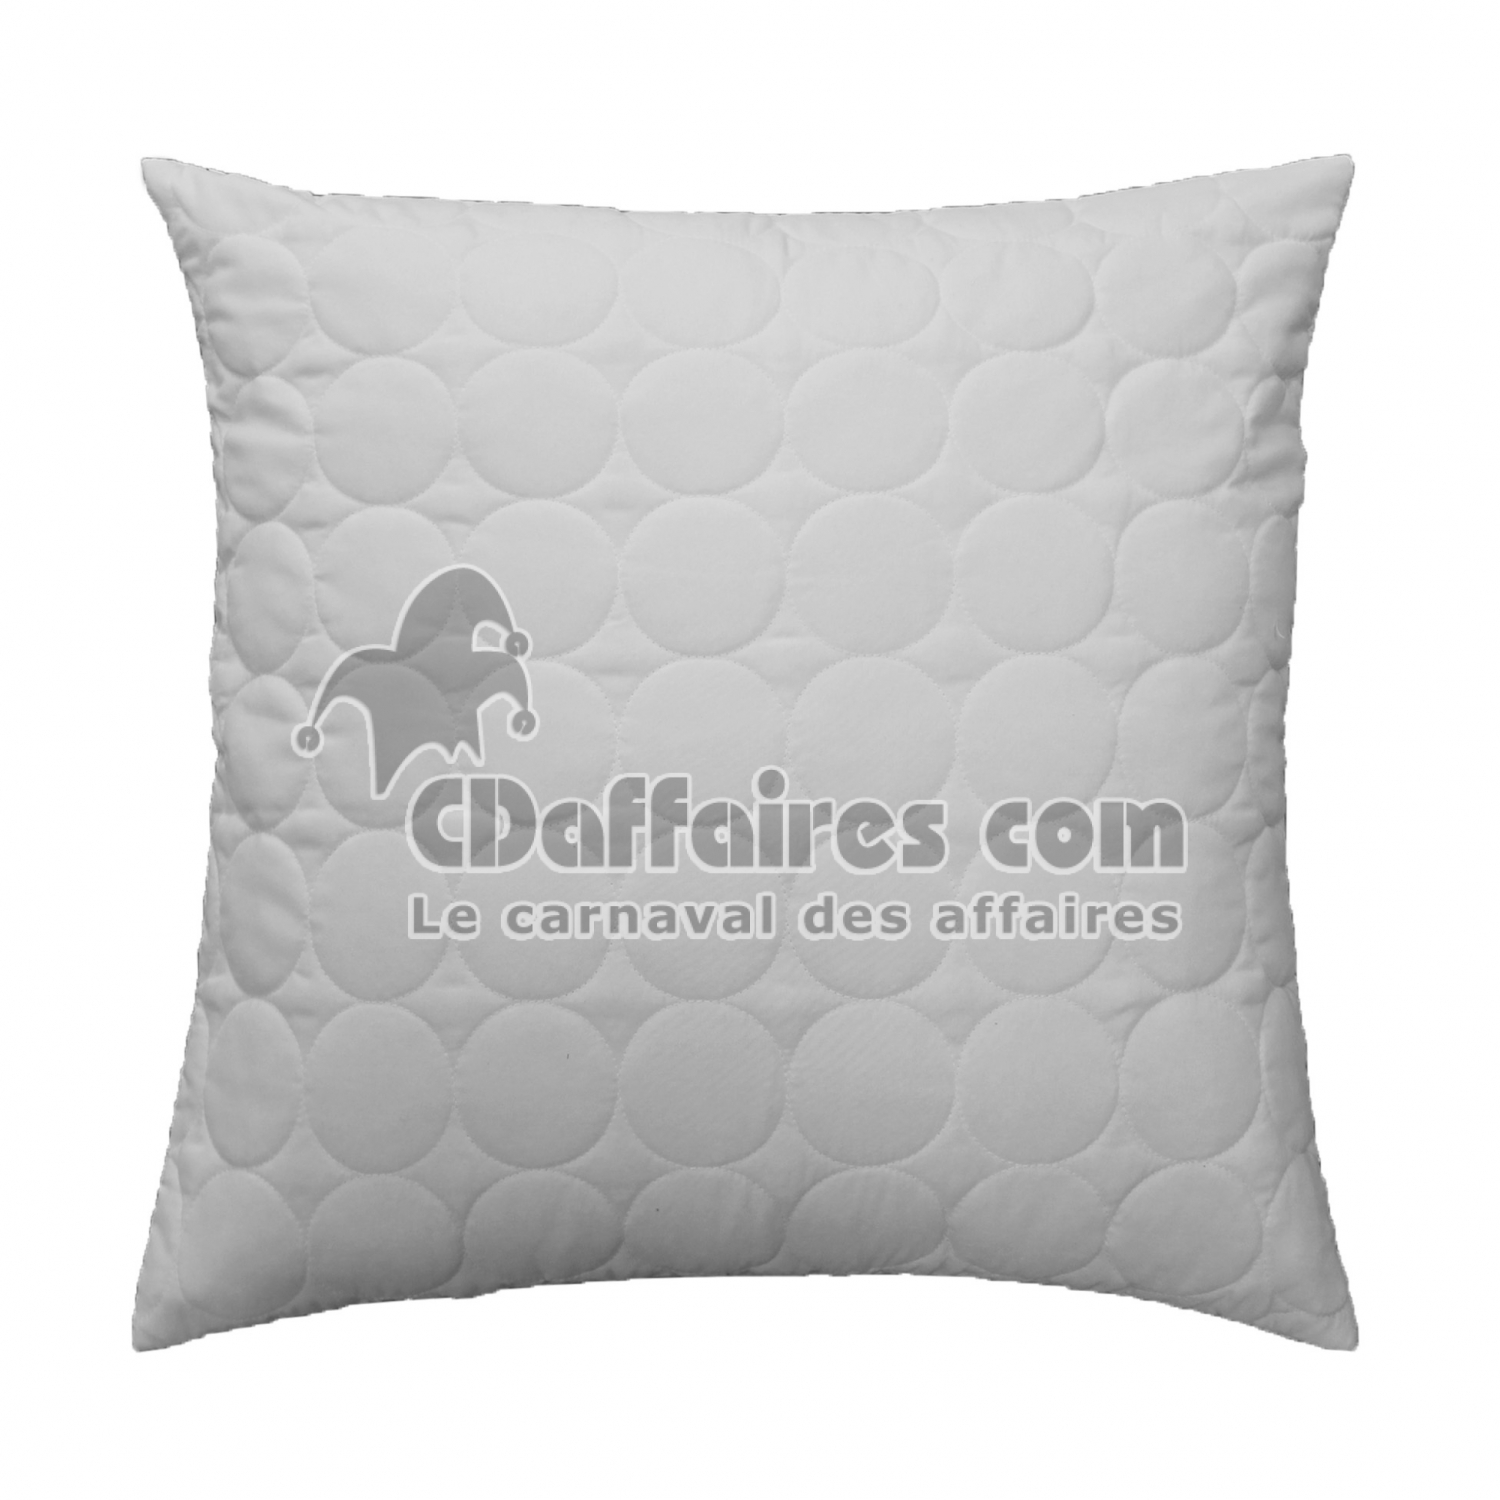 housse de coussin encart 40 x 40 cm microfibre unie candy blanc cdaffaires. Black Bedroom Furniture Sets. Home Design Ideas